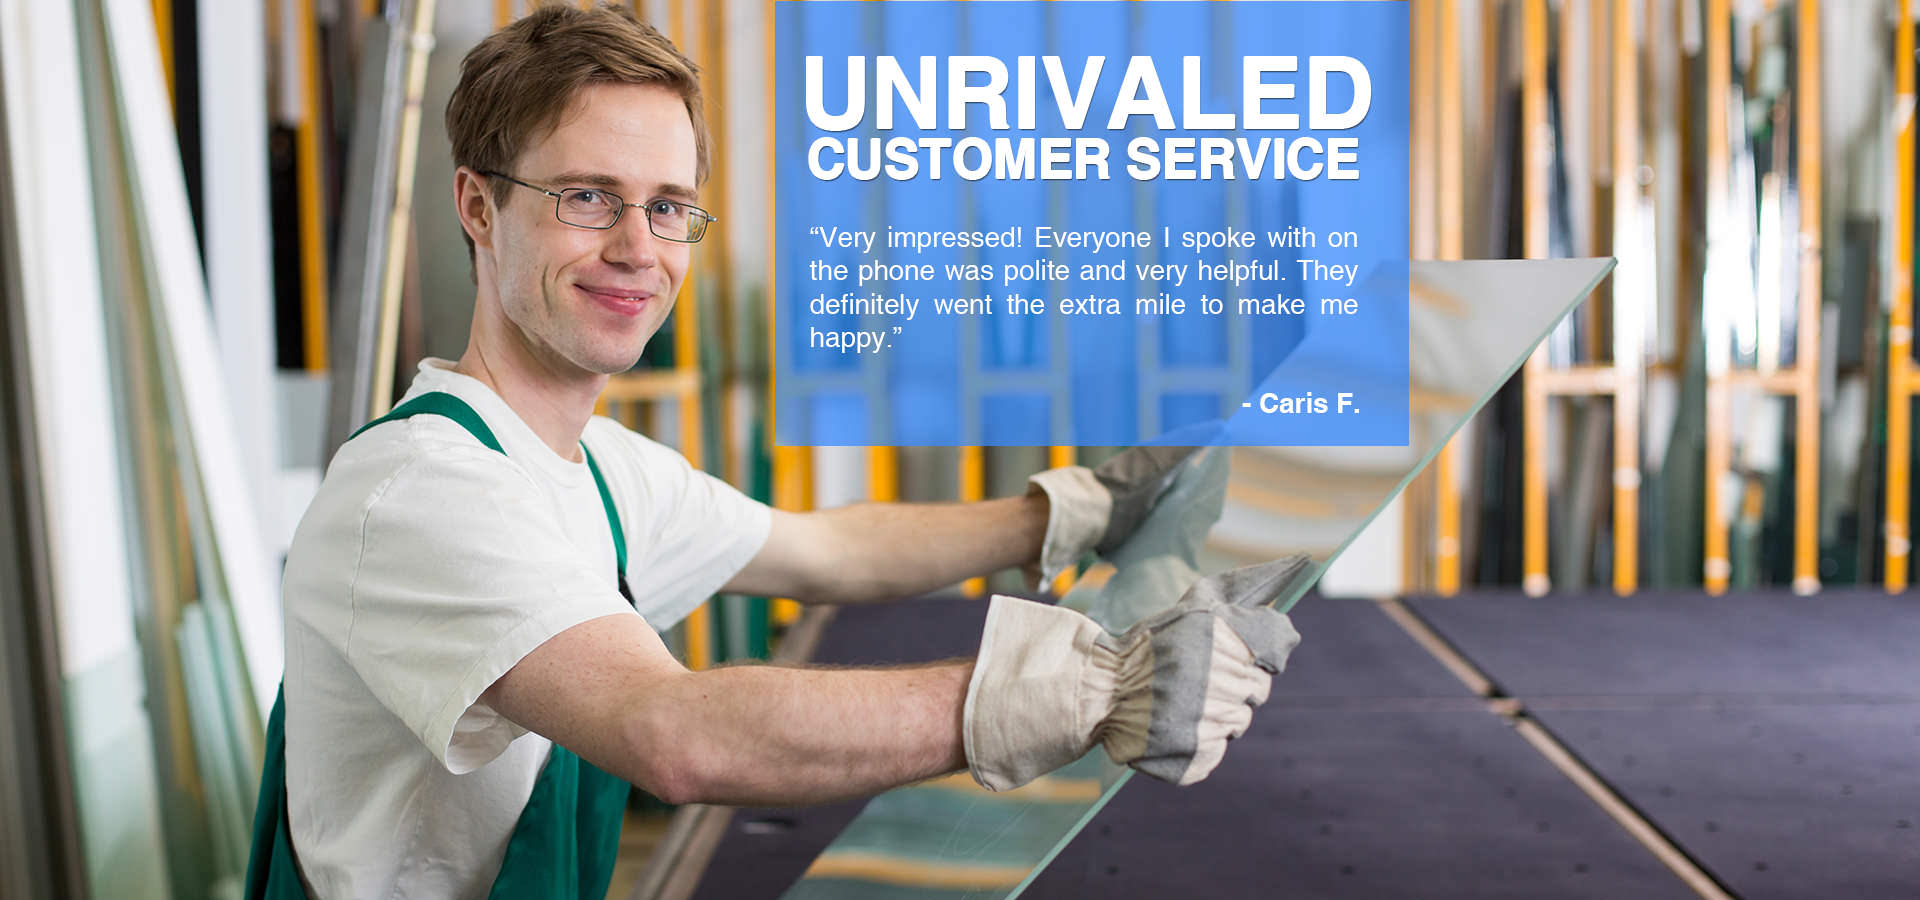 Glass Store - Unrivaled Customer Service